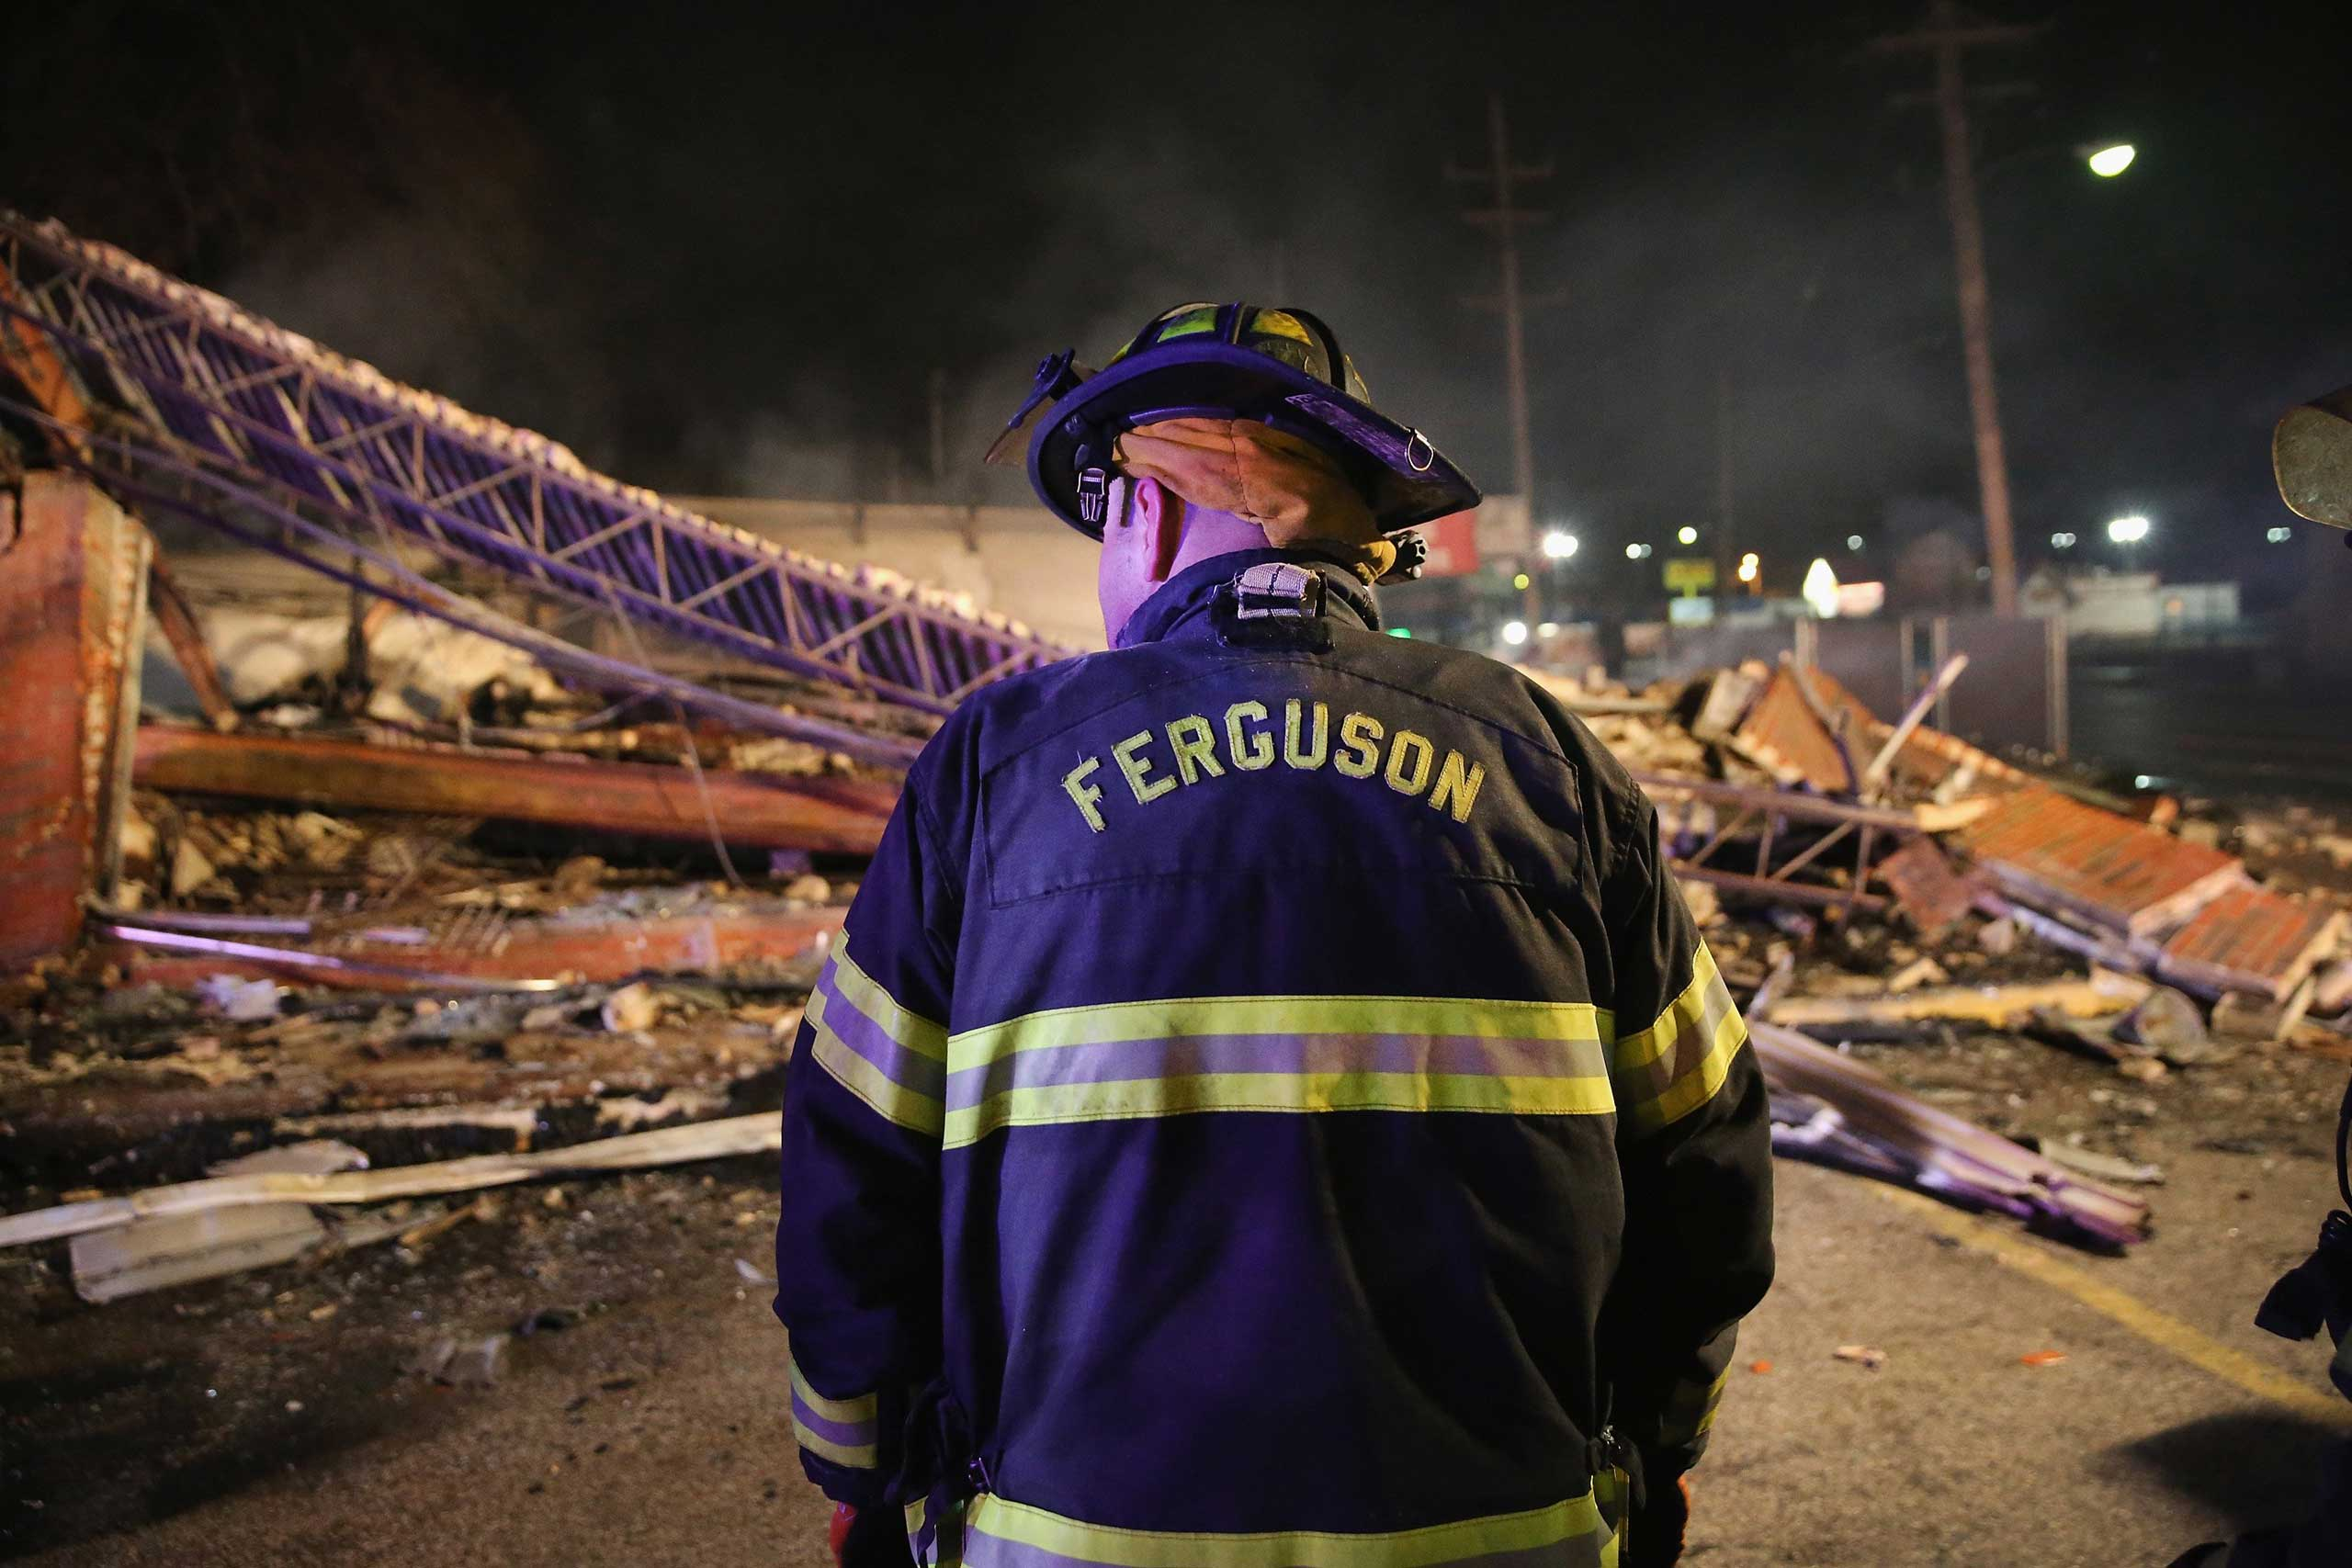 A Ferguson firefighter surveys rubble at a strip mall that was set on fire when rioting erupted following the grand jury announcement in the Michael Brown case on Nov. 25, 2014 in Ferguson, Mo.